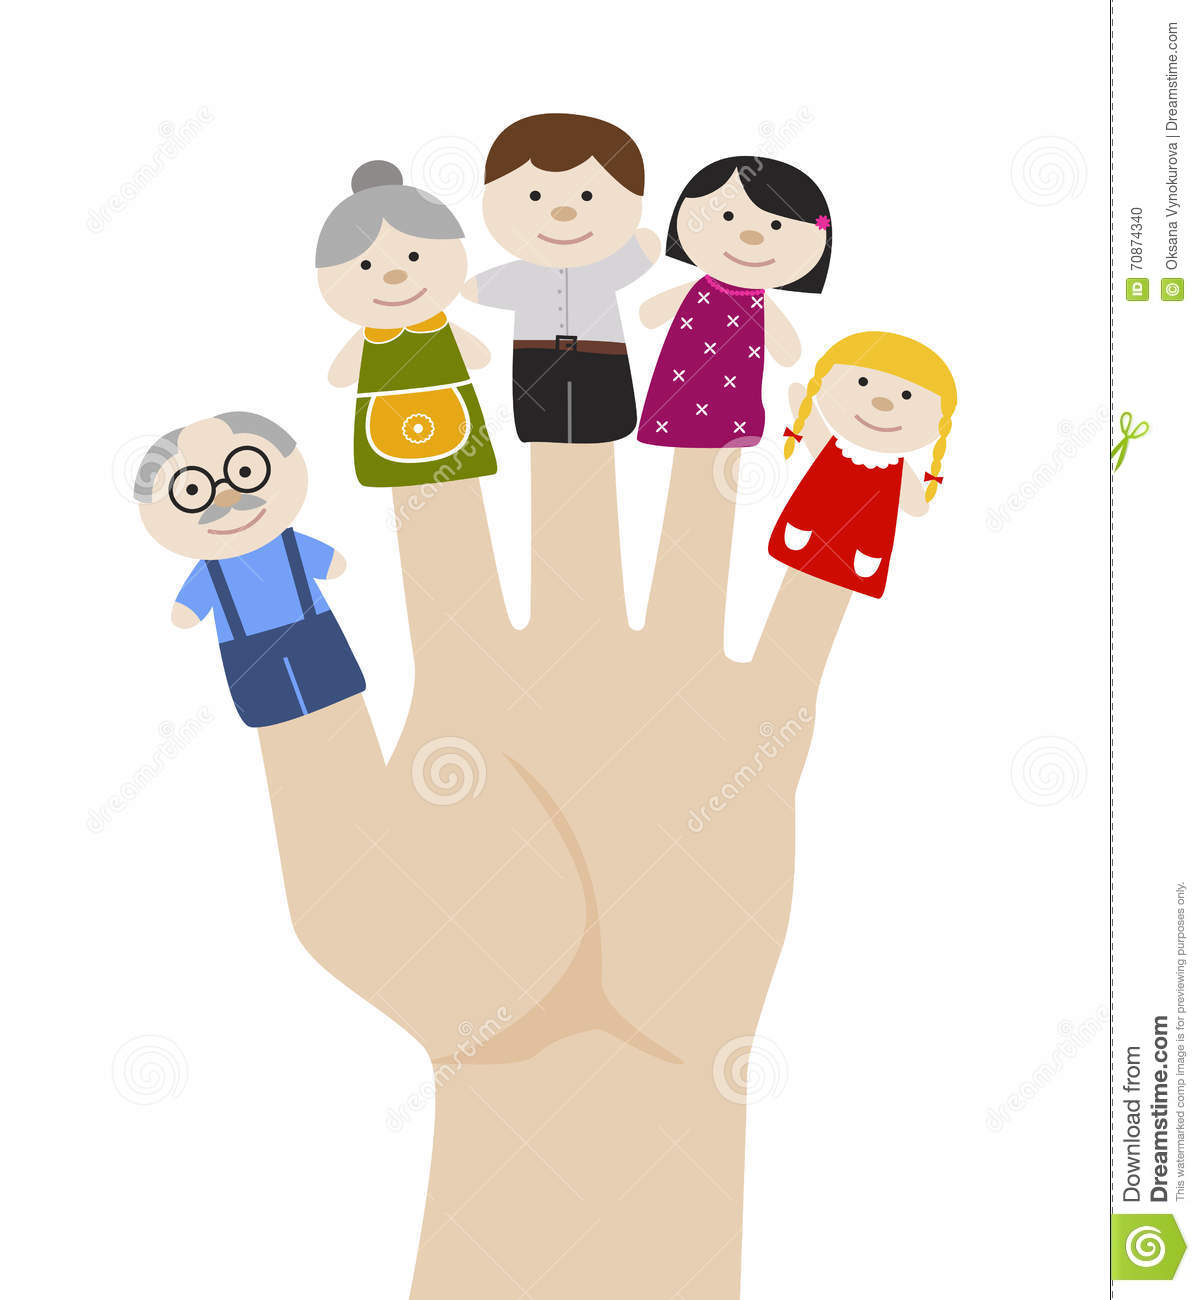 Family Finger Puppets Craft